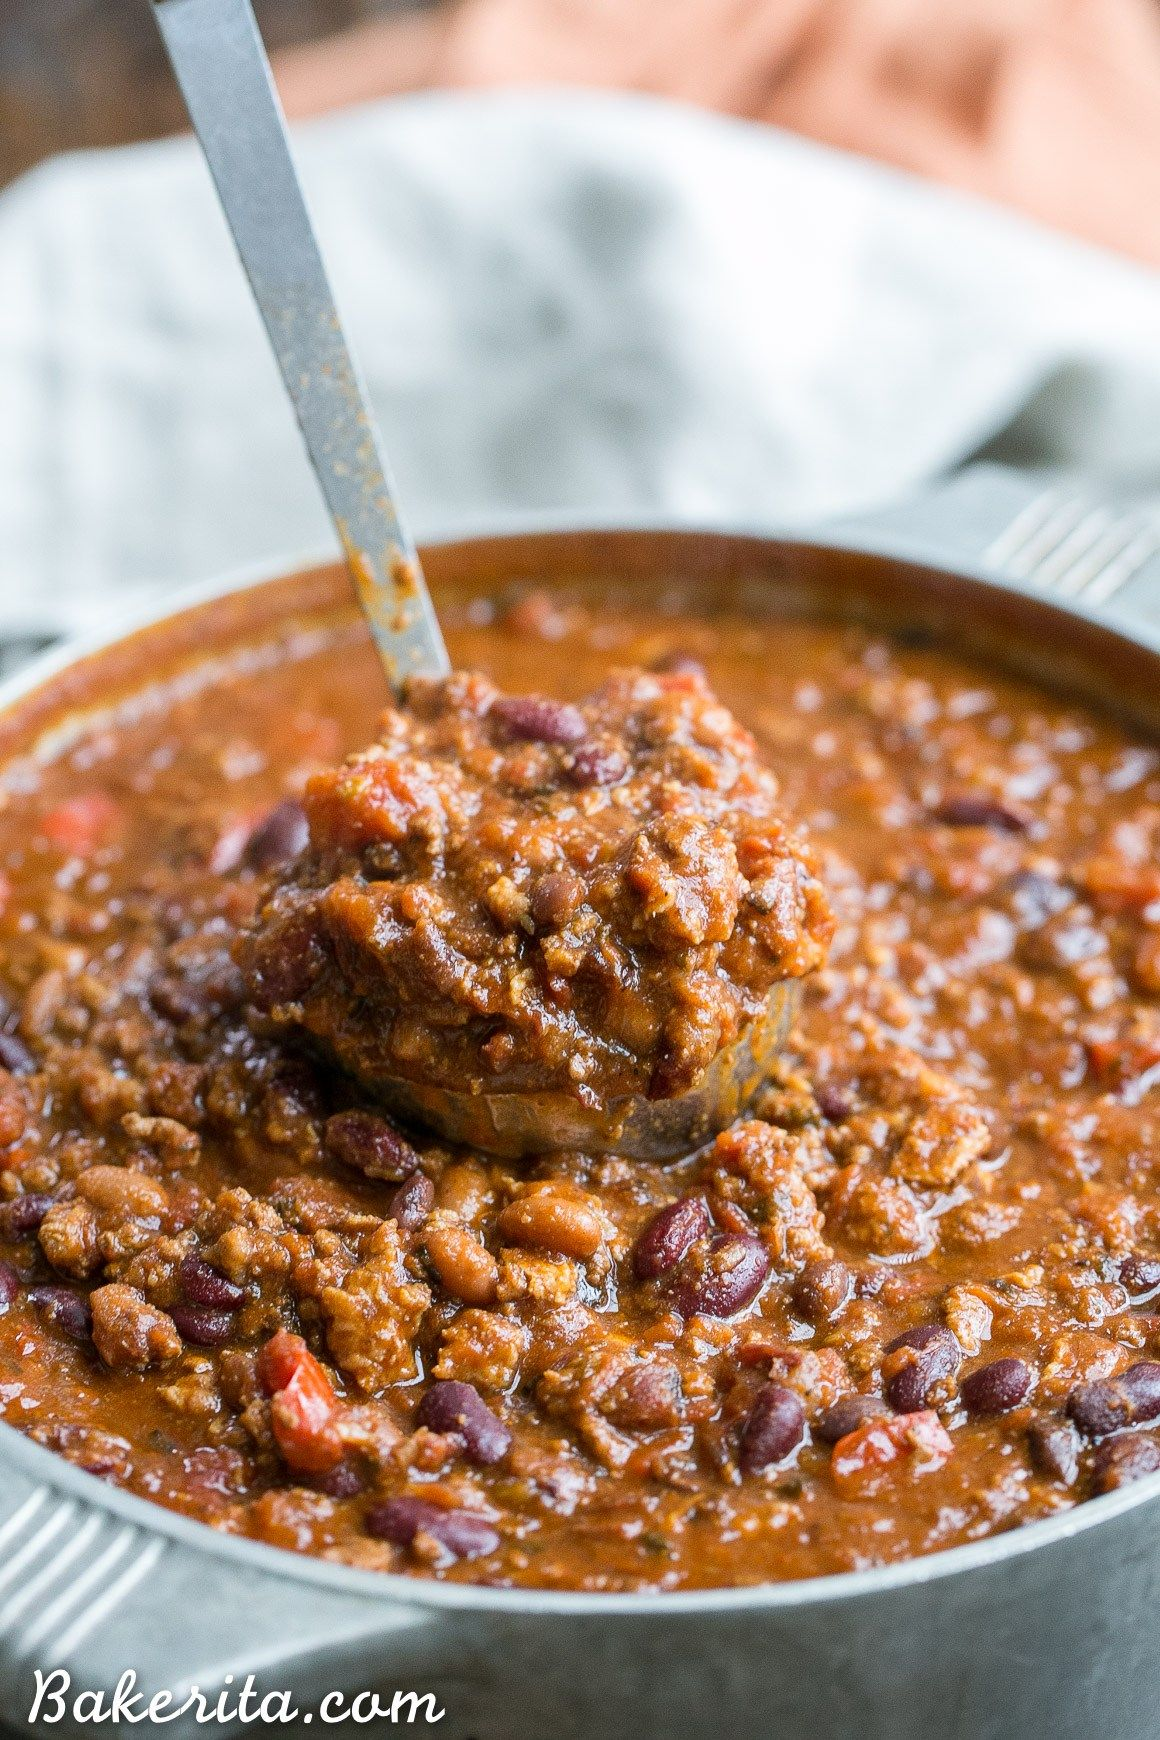 This Recipe For My Best Chili Is A Major Favorite Around Here It S A Hearty Warming Chili Made With Ground Beef Bacon Sausag Best Chili Recipe Recipes Food